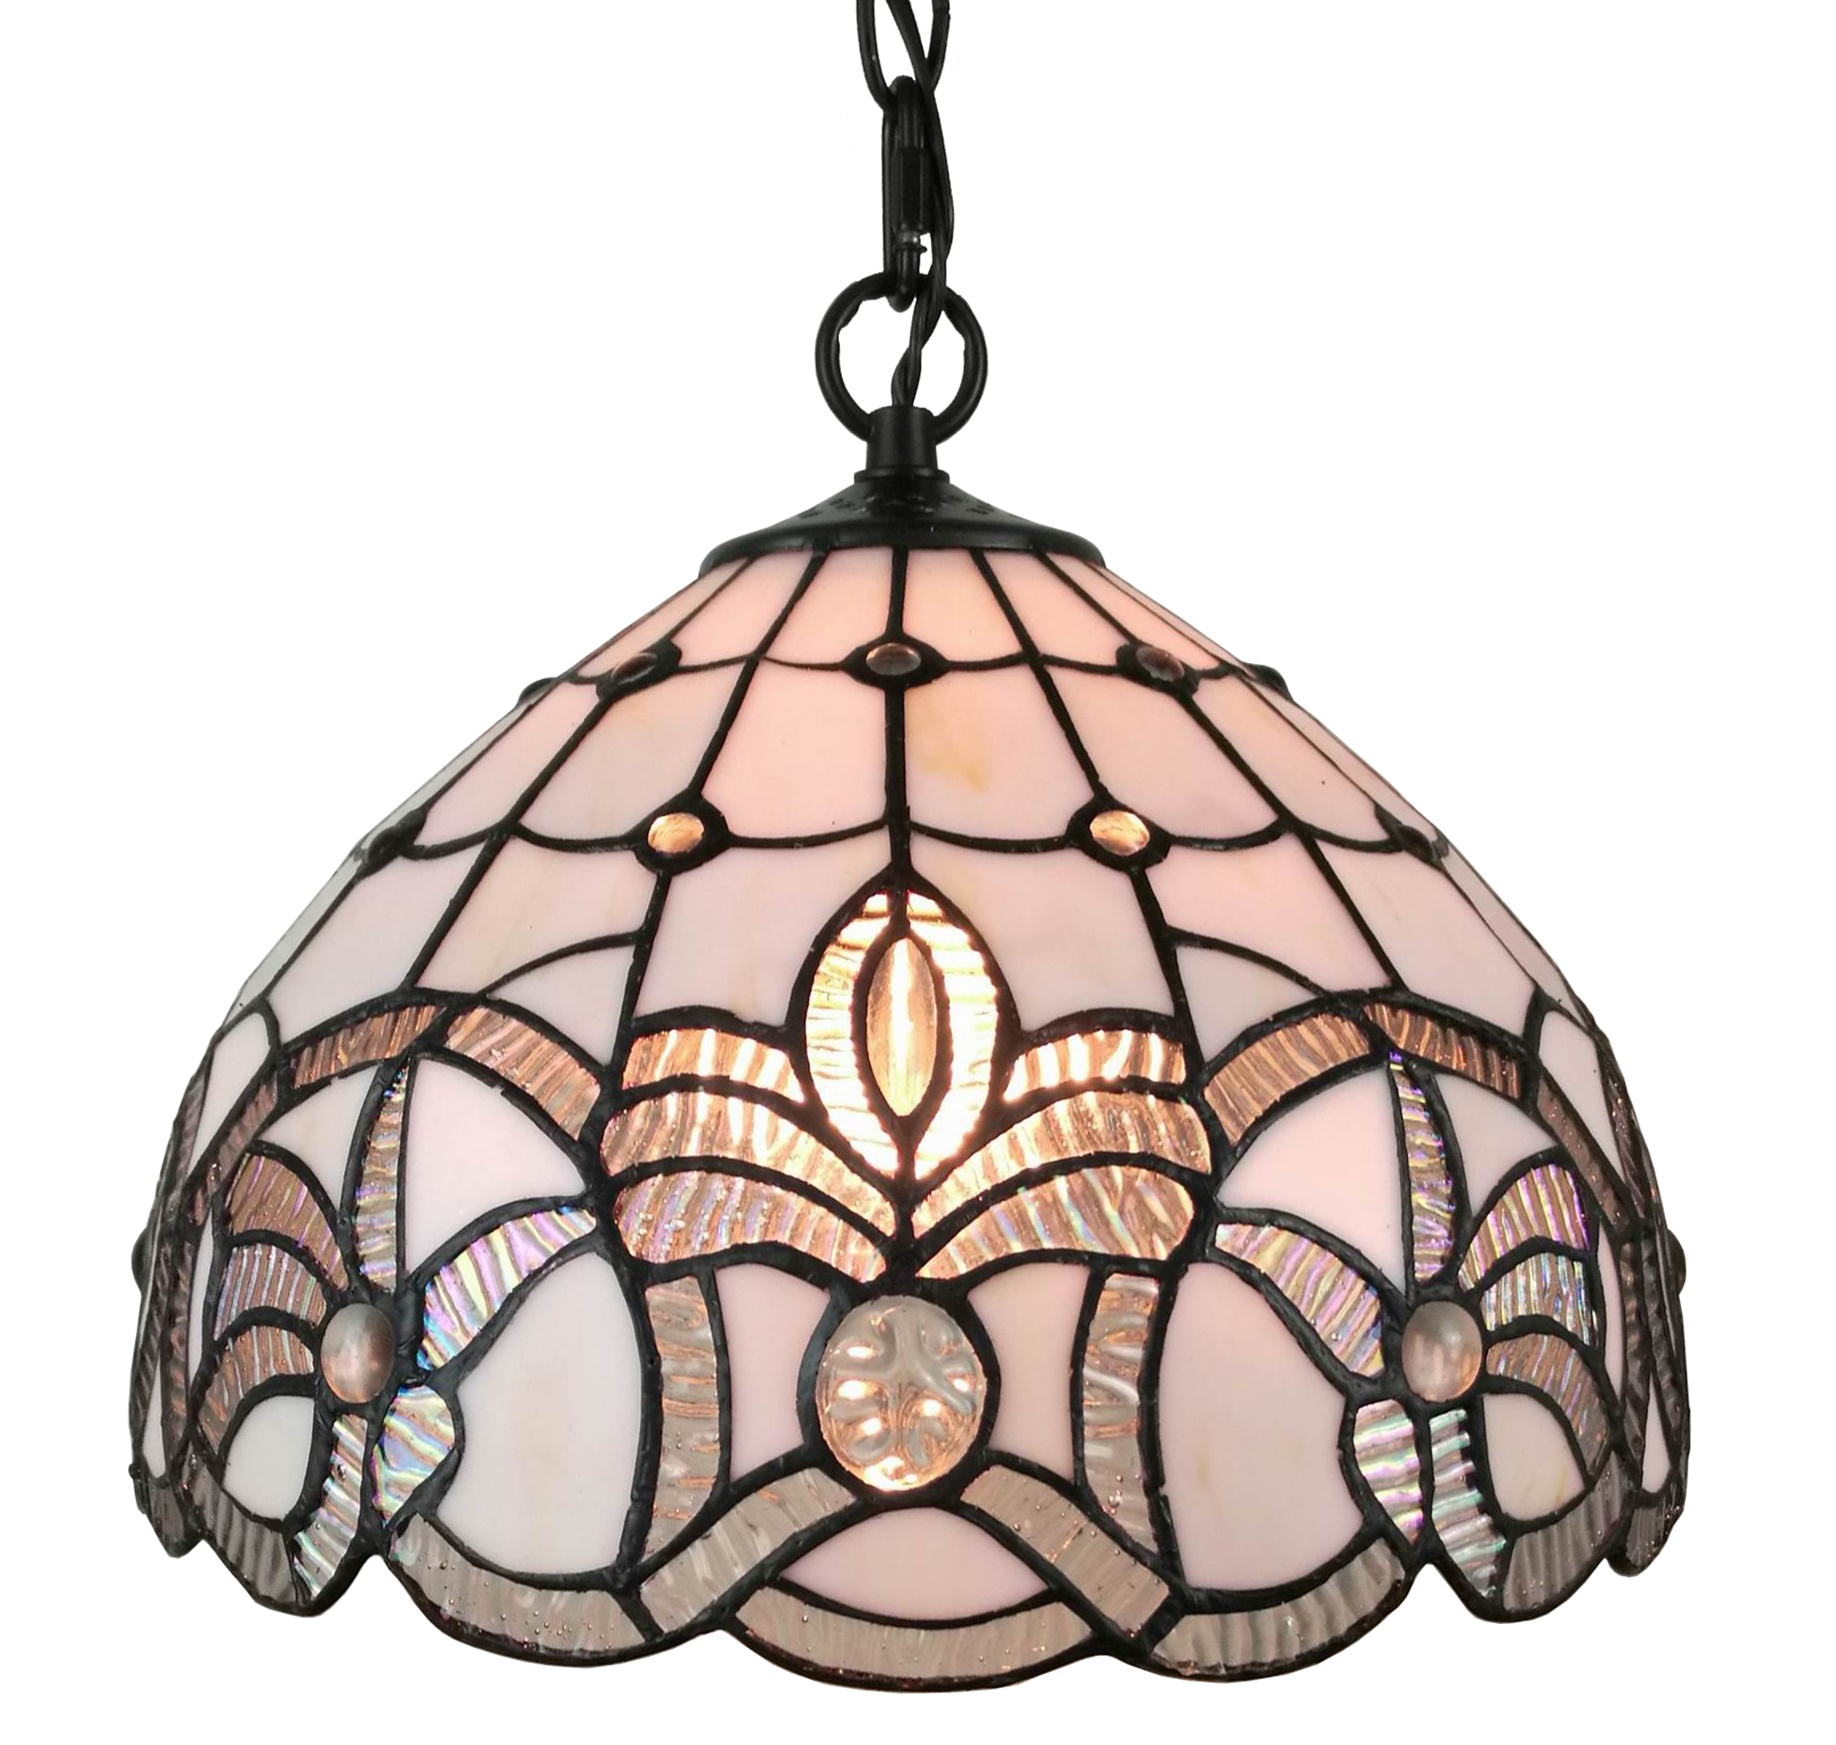 Amora Lighting Tiffany Style AM282HL12 White Ceiling Fixture 12 Inches Wide by Amora Lighting